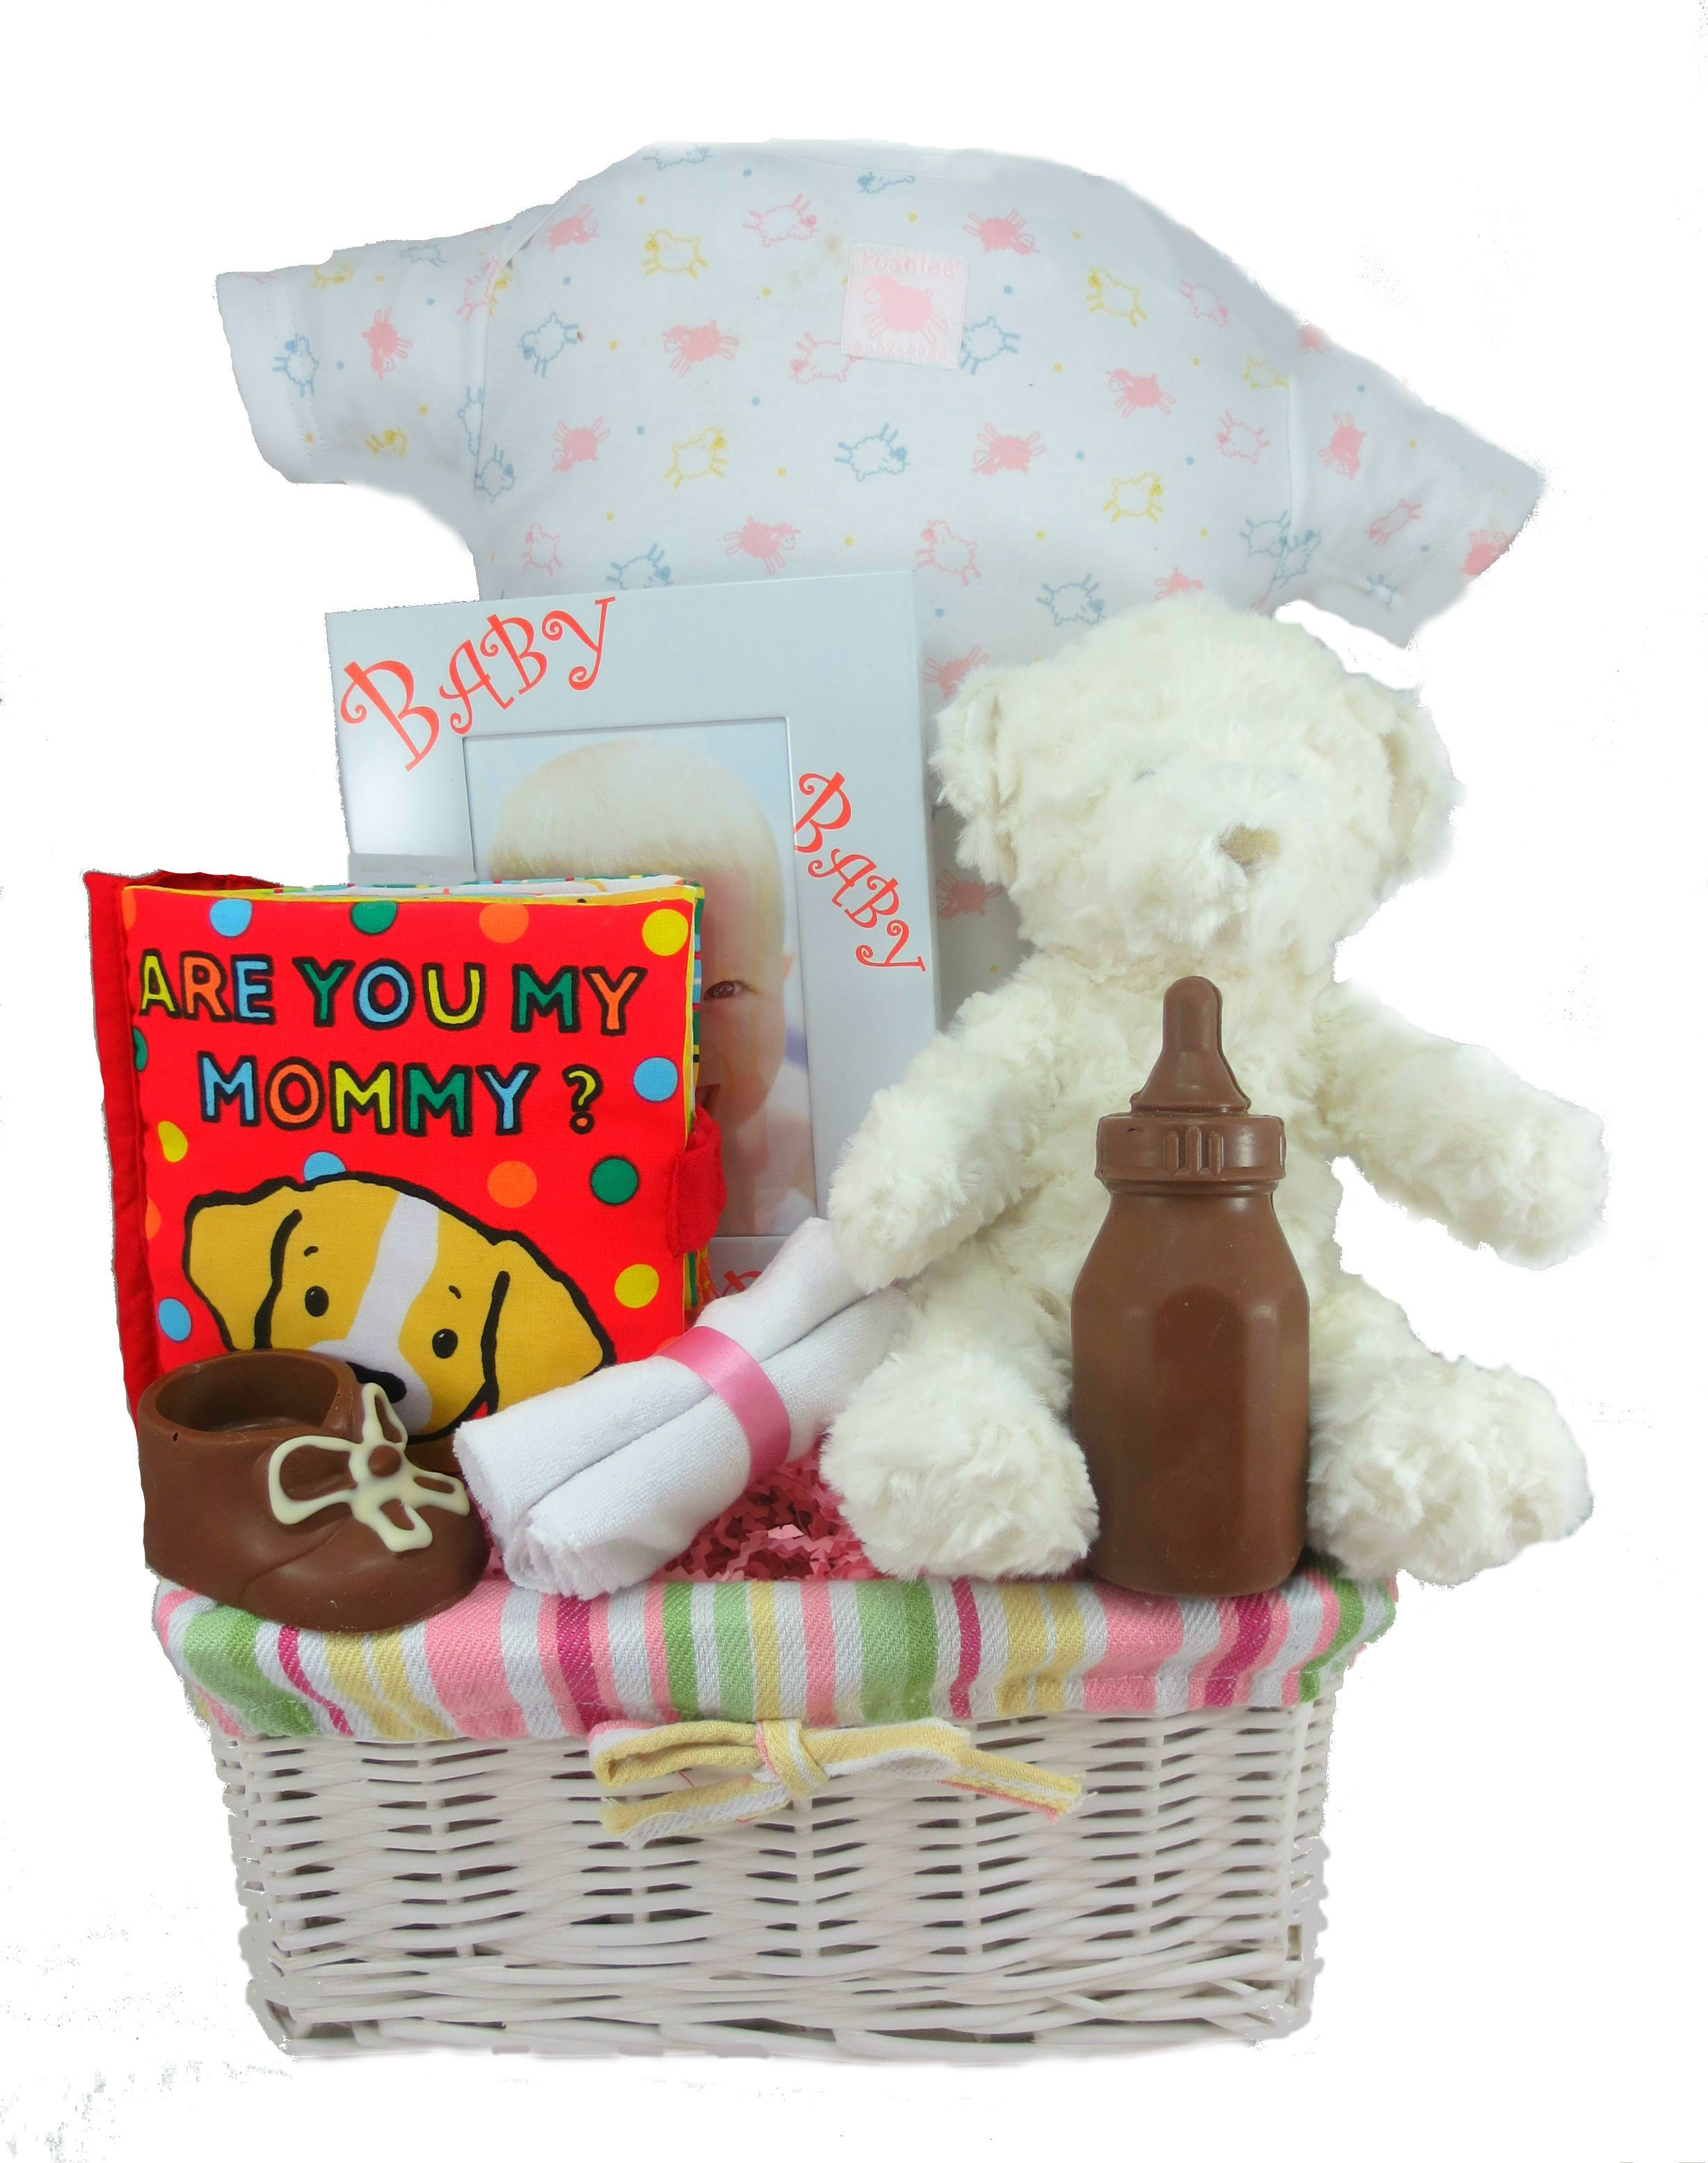 My Mommy & Baby Gift Basket